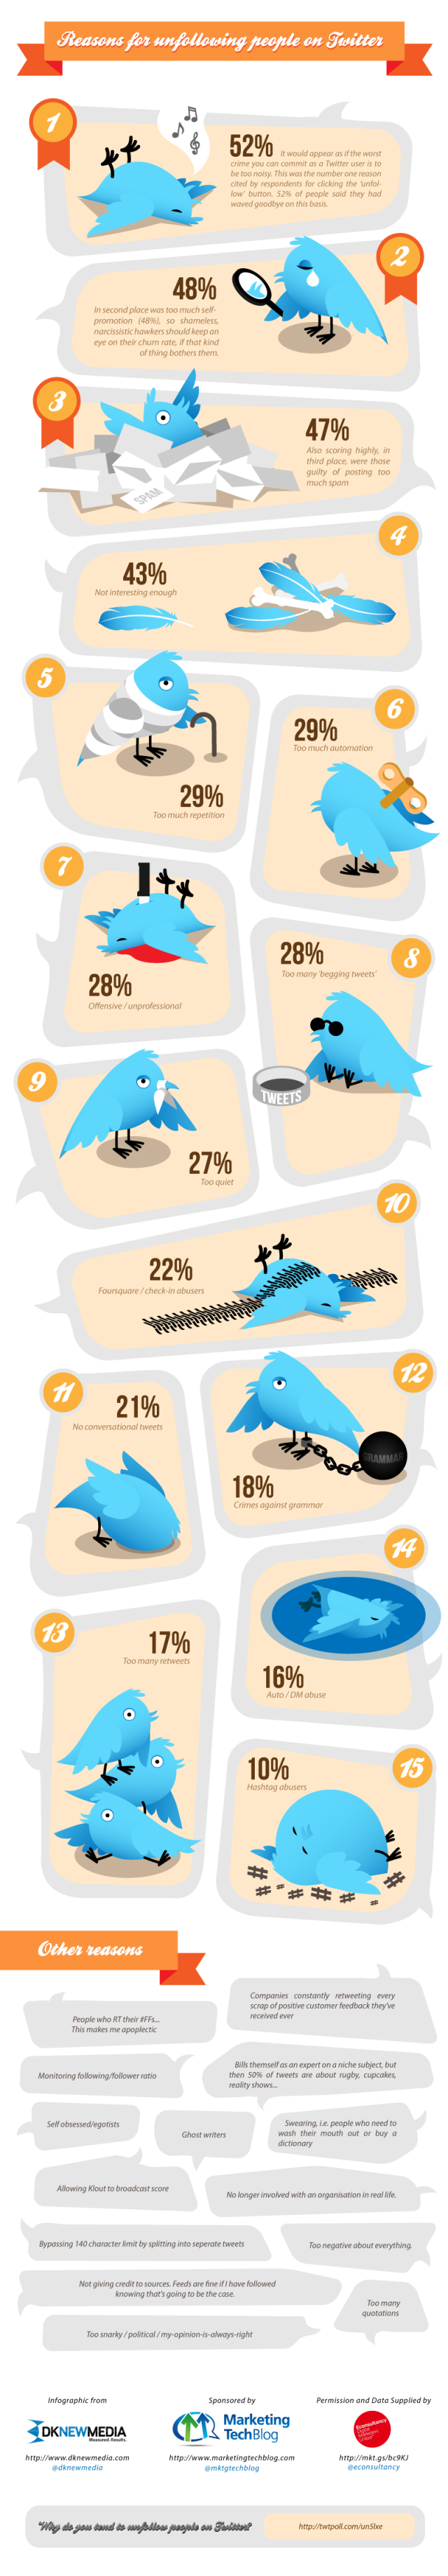 Reasons-For-Unfollowing-People-On-Twitter-infographic